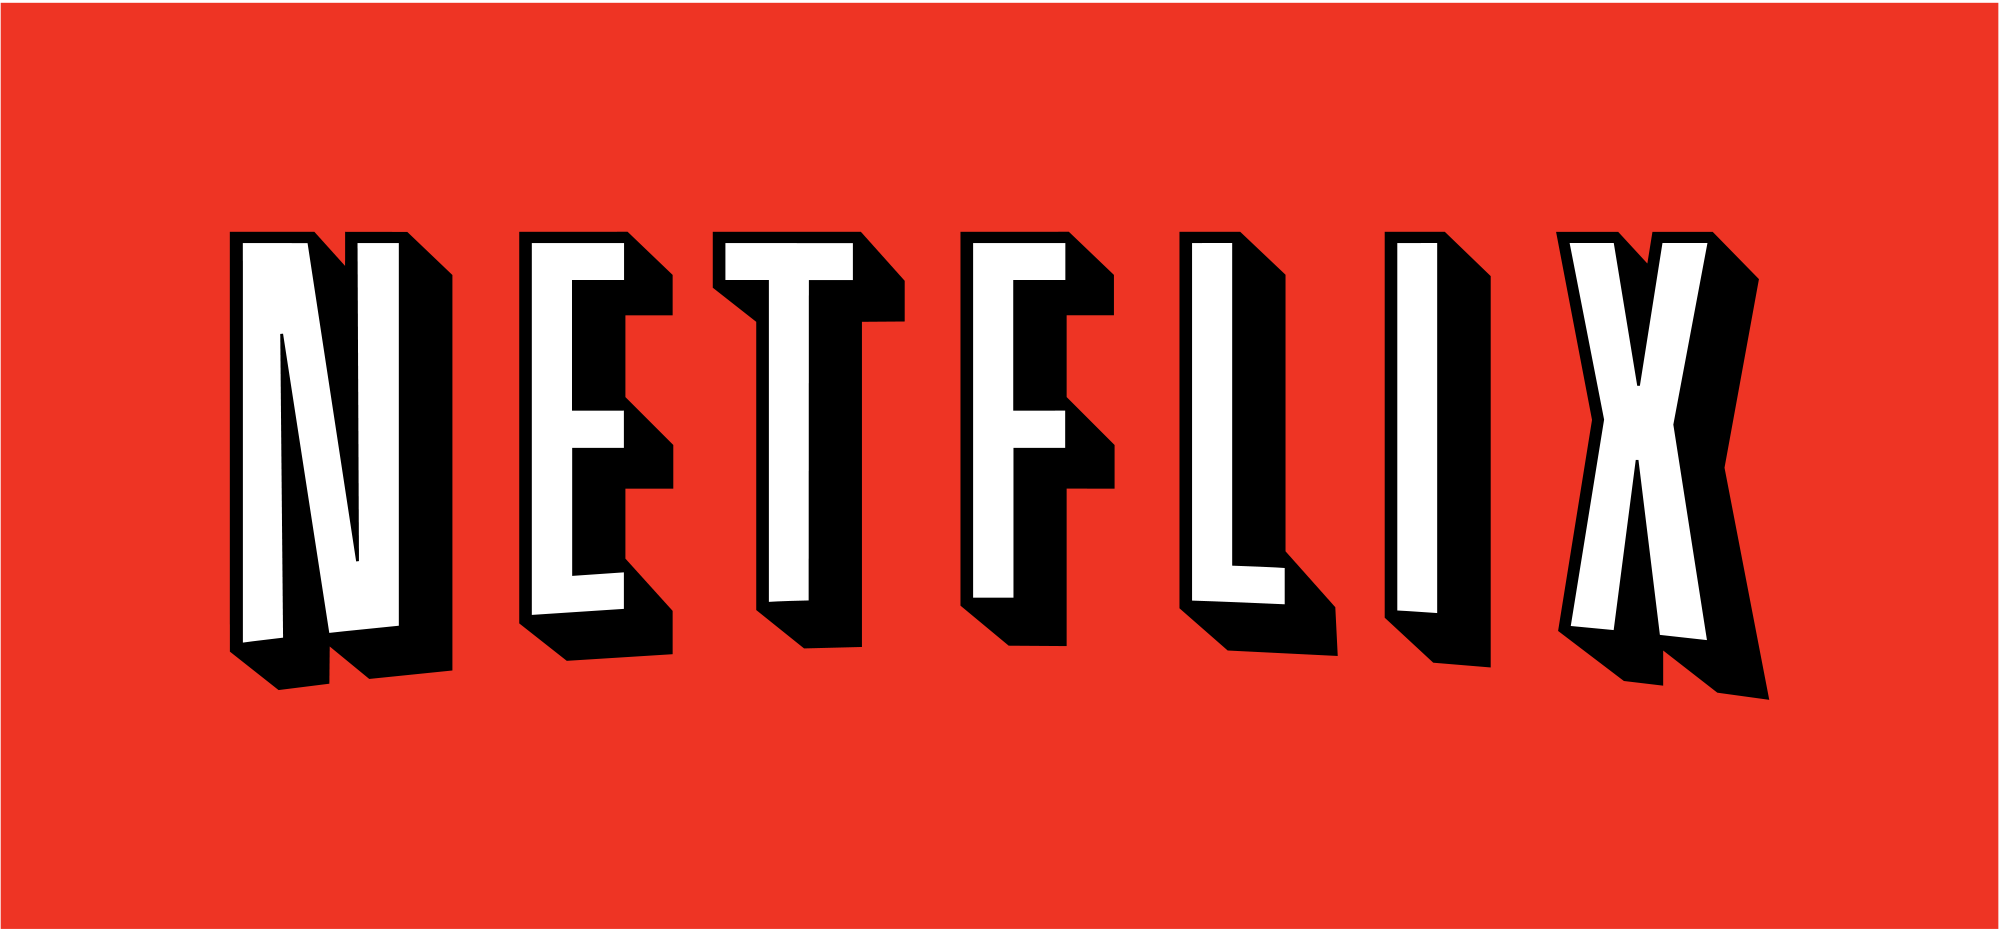 Dont Settle For UK Netflix, Heres How To Get The Better U.S. Version 14019907992 d3f3d15102 o